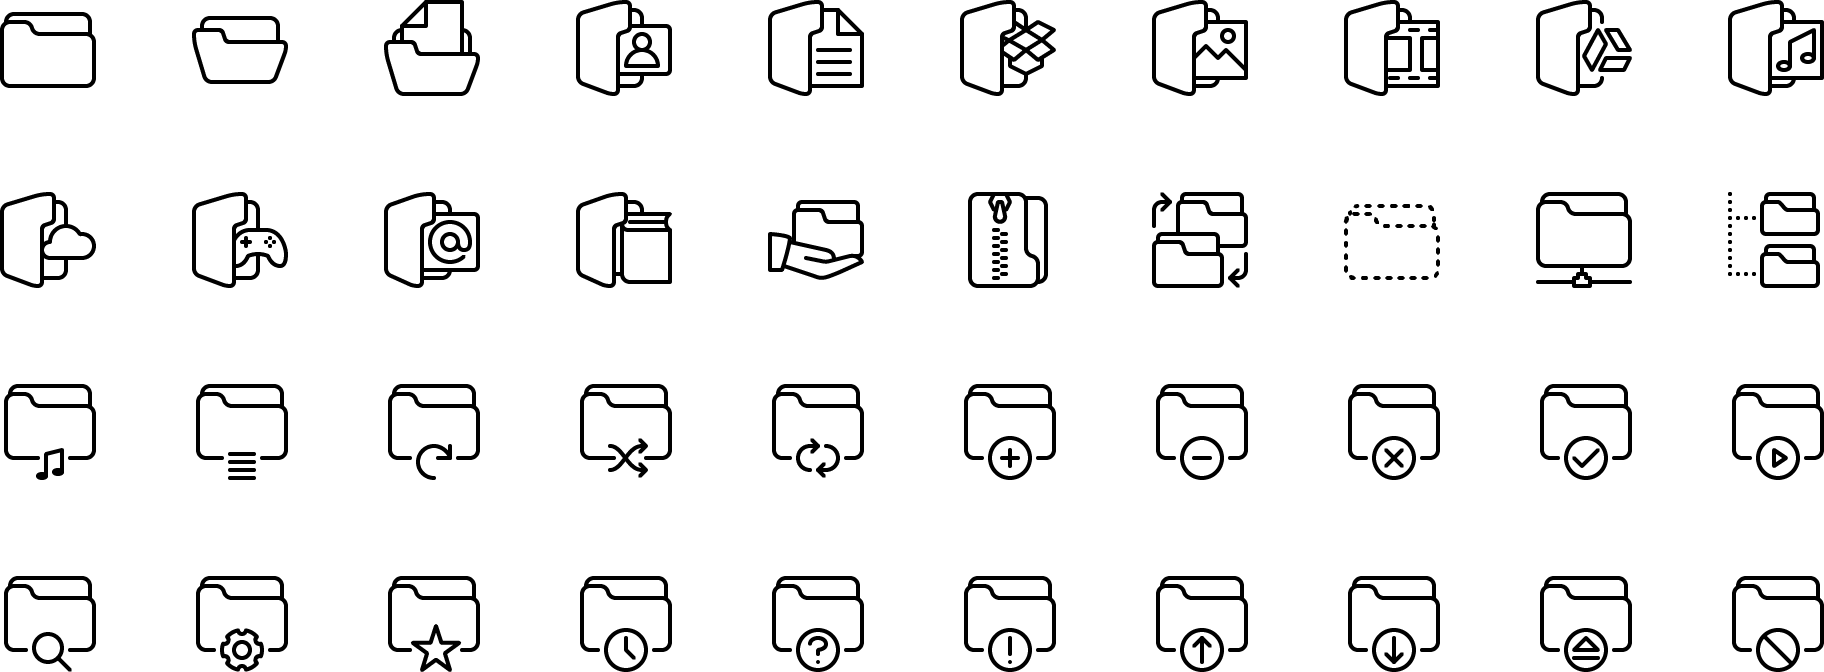 Preview Counticons Icons Vector Line And Solid Icons Collection